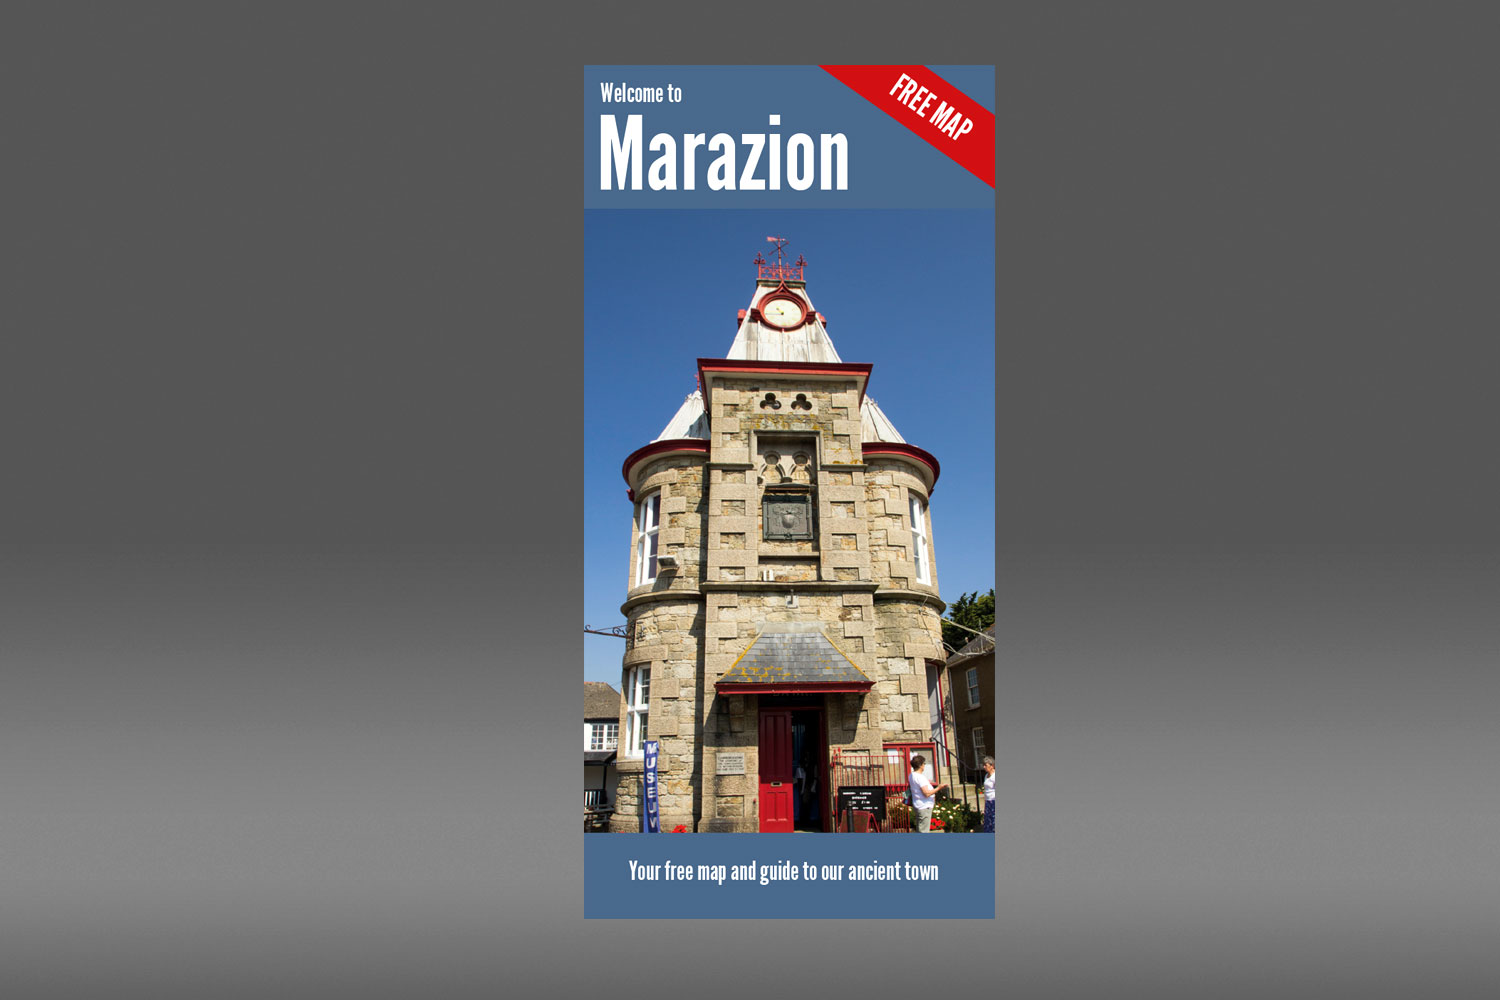 Marazion map and guide design and branding from cornishrock in Cornwall